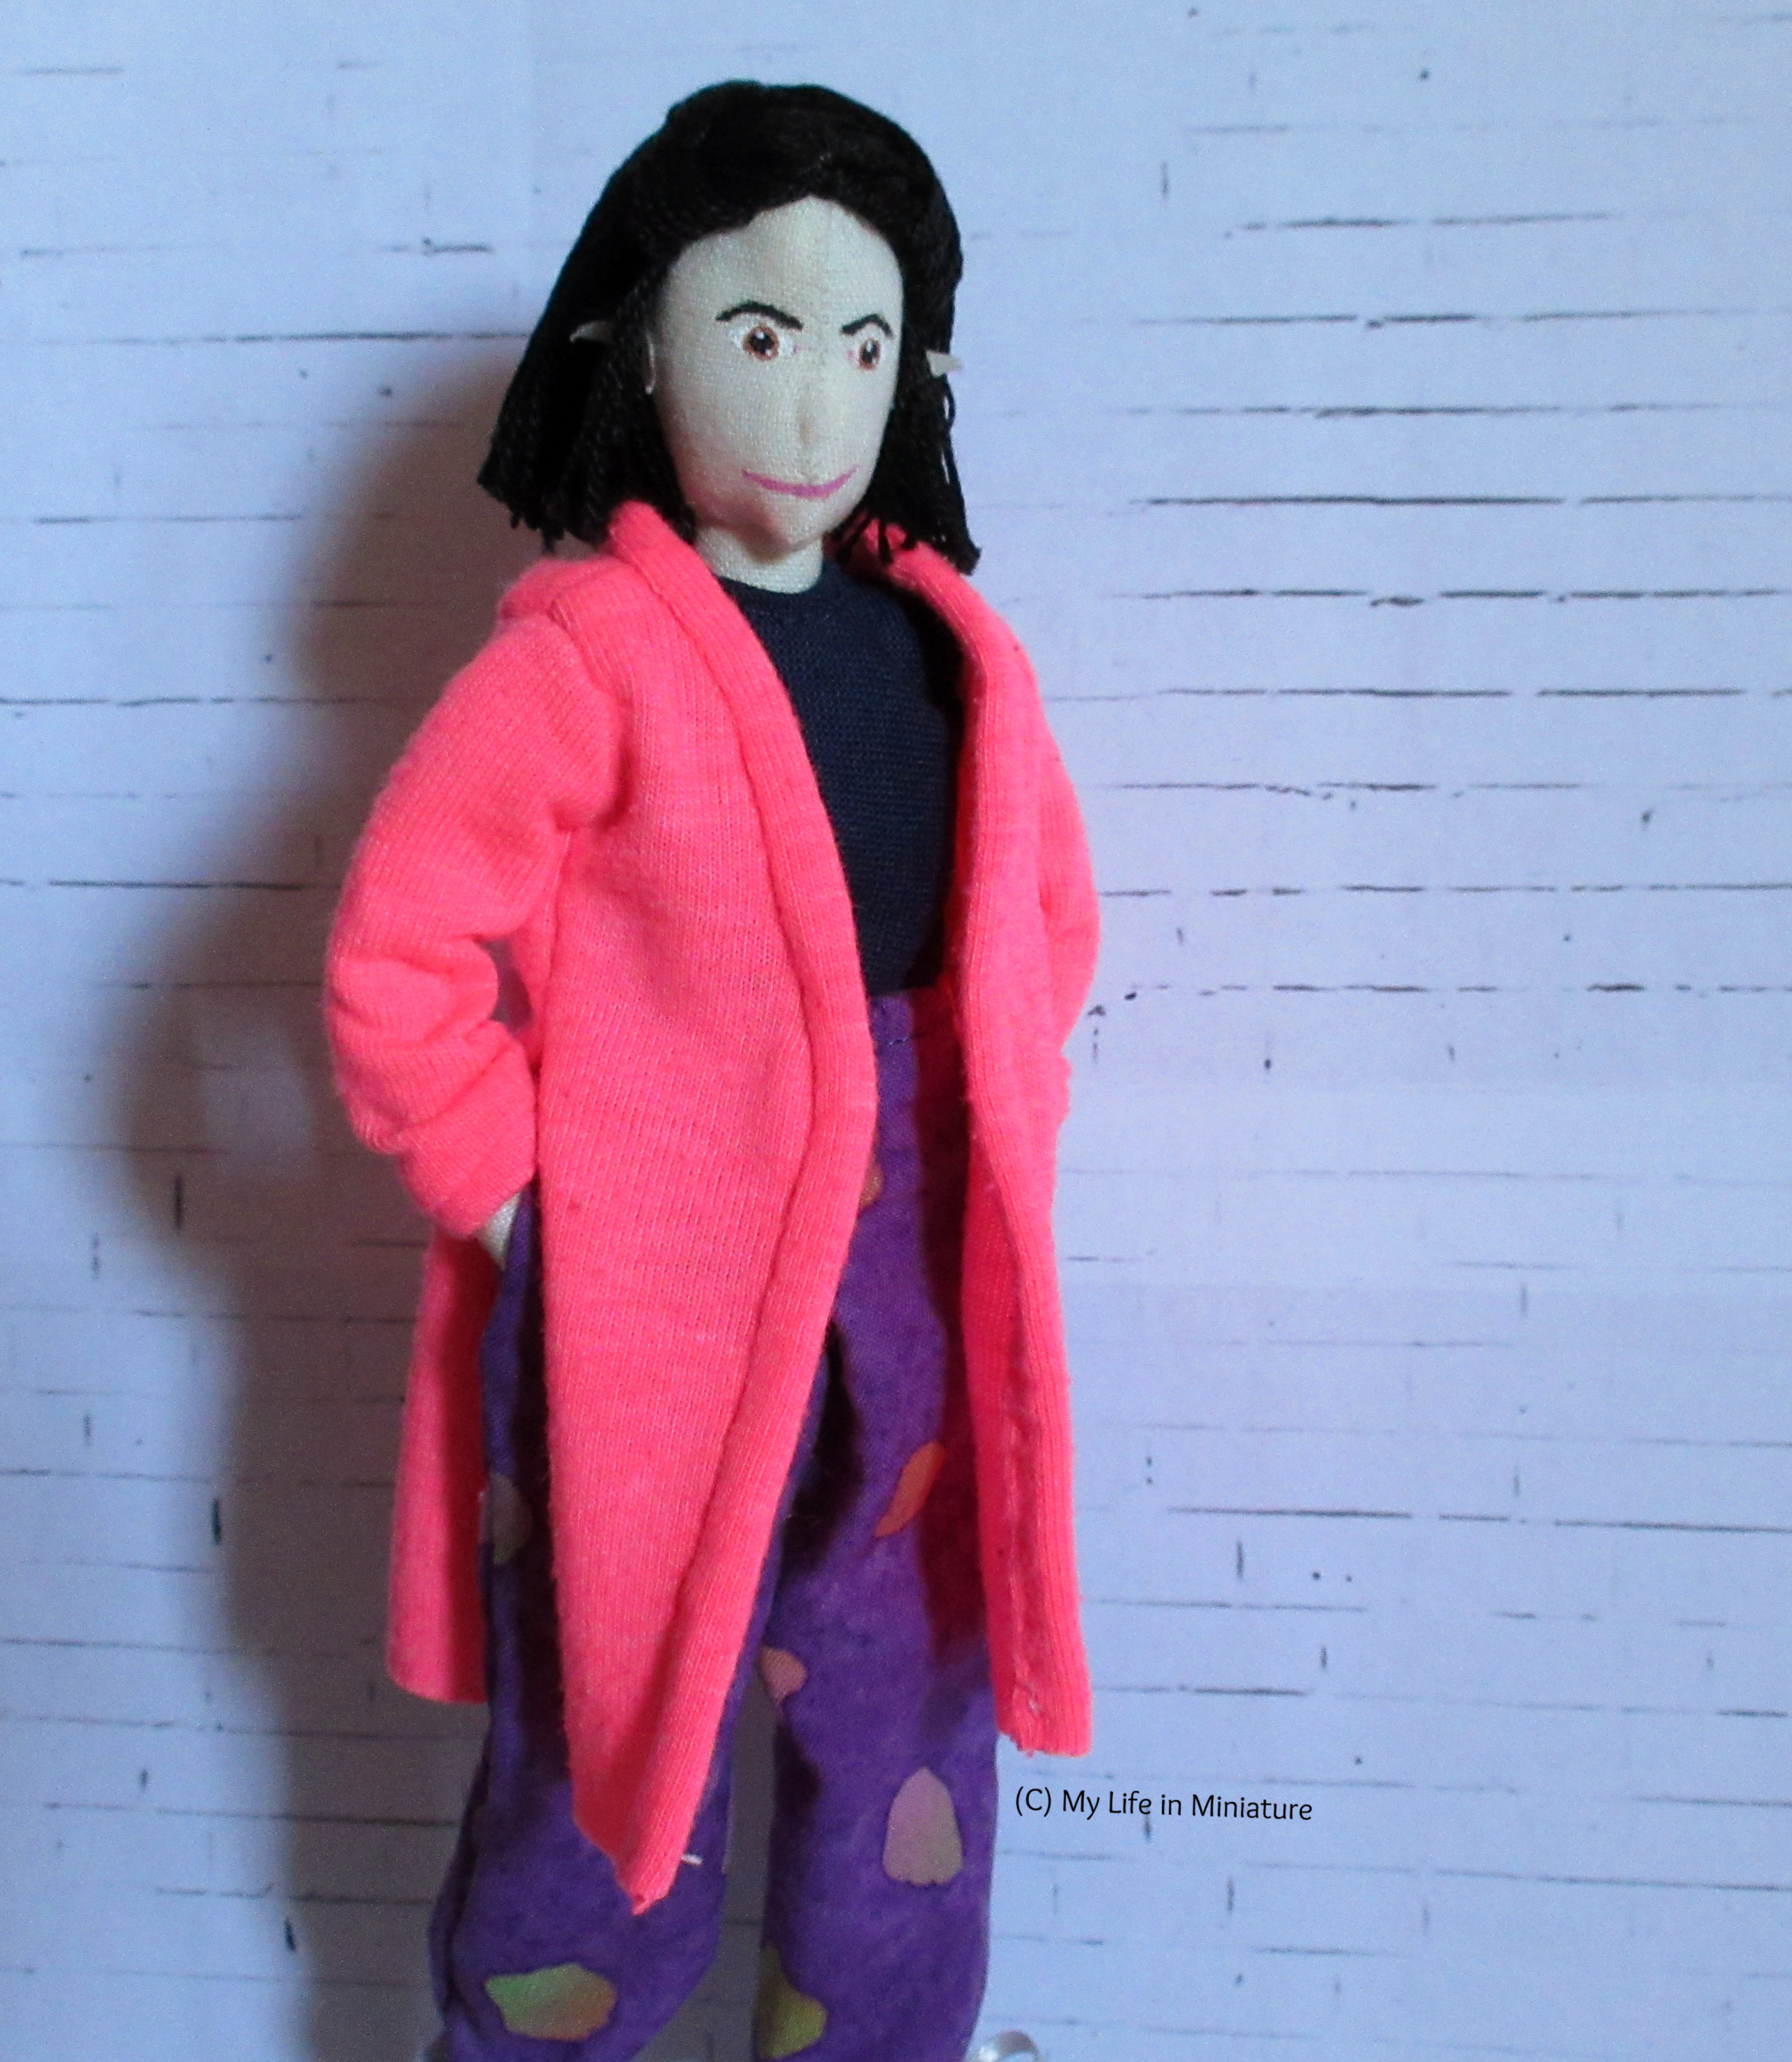 Tiffany wears her neon pink cardigan with her loose purple pants and a navy top. The cardigan goes to her knees, with side seam slits to her waist. Her hands are in her pockets.